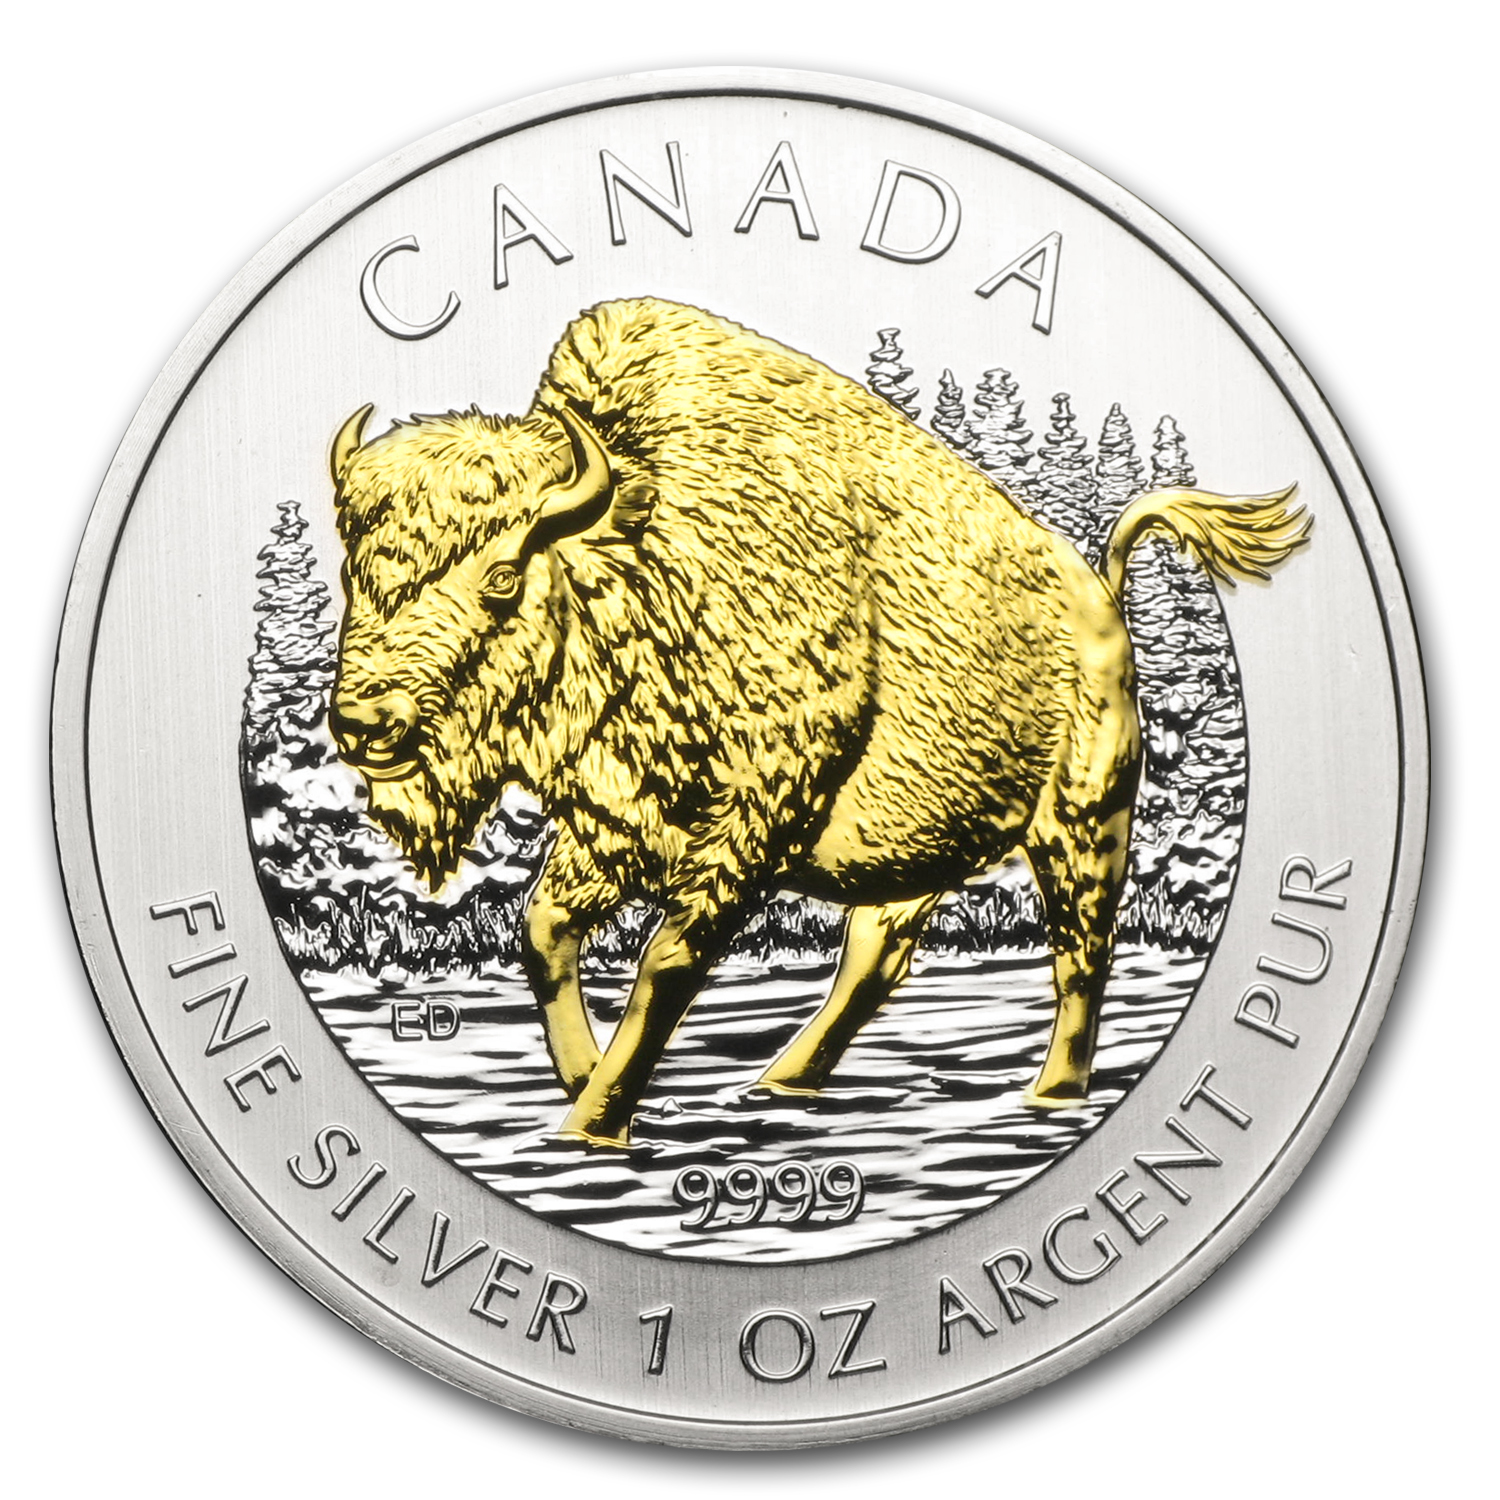 2013 1 oz Silver Canadian Wildlife Series - Wood Bison - Gilded